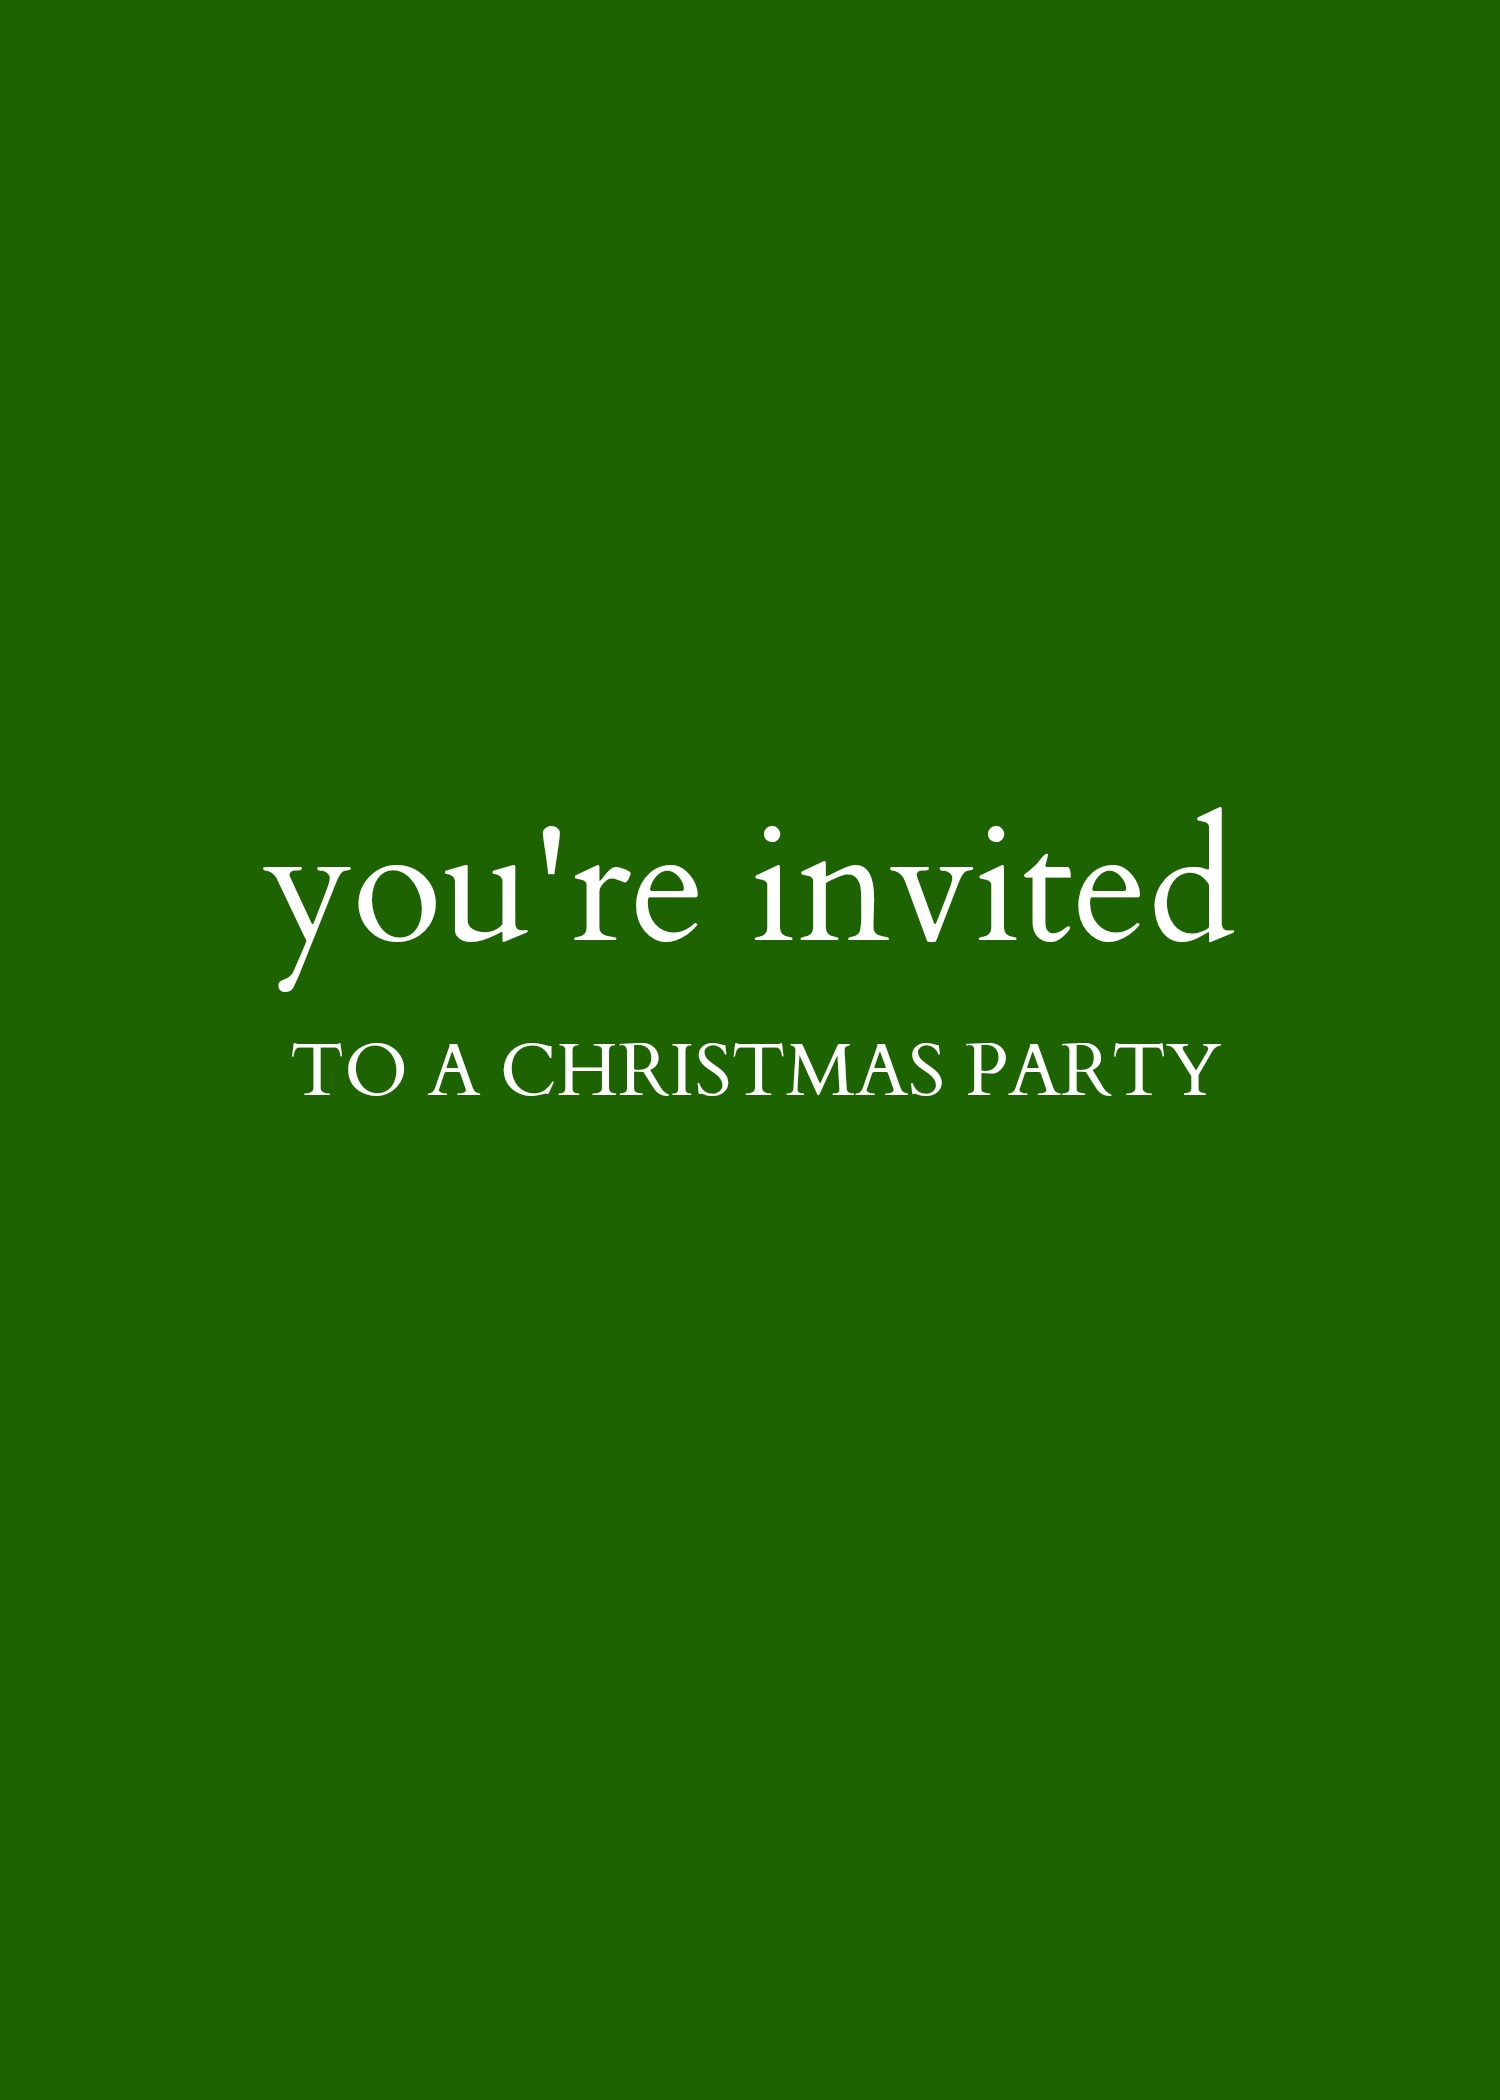 Kate Spade Christmas Party Invite - Cover